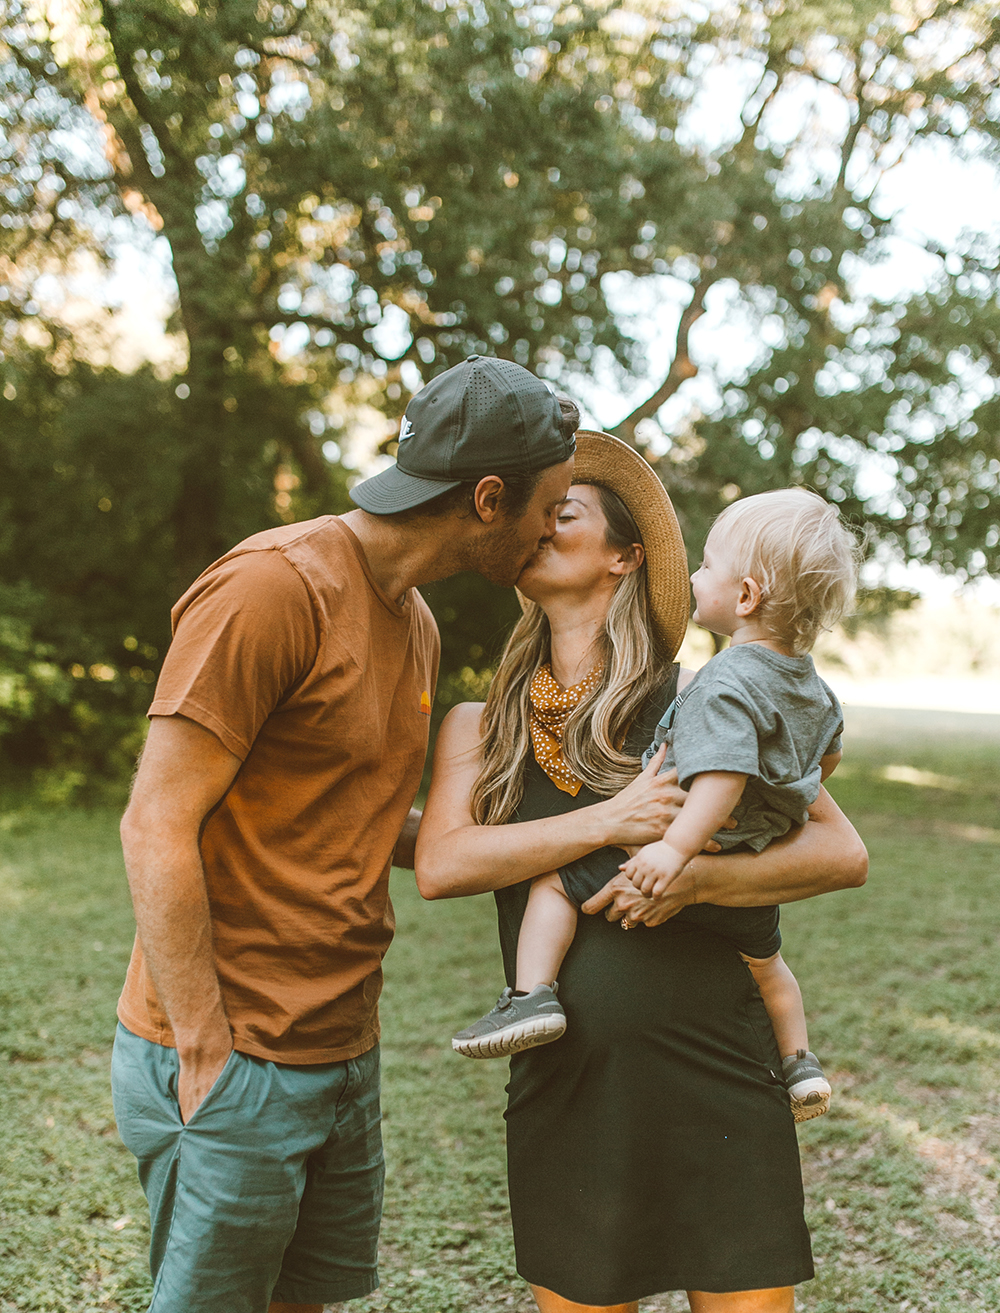 livvyland-blog-olivia-watson-austin-texas-lifestyle-motherhood-blogger-fathers-day-gift-guide-outdoors-ideas-12